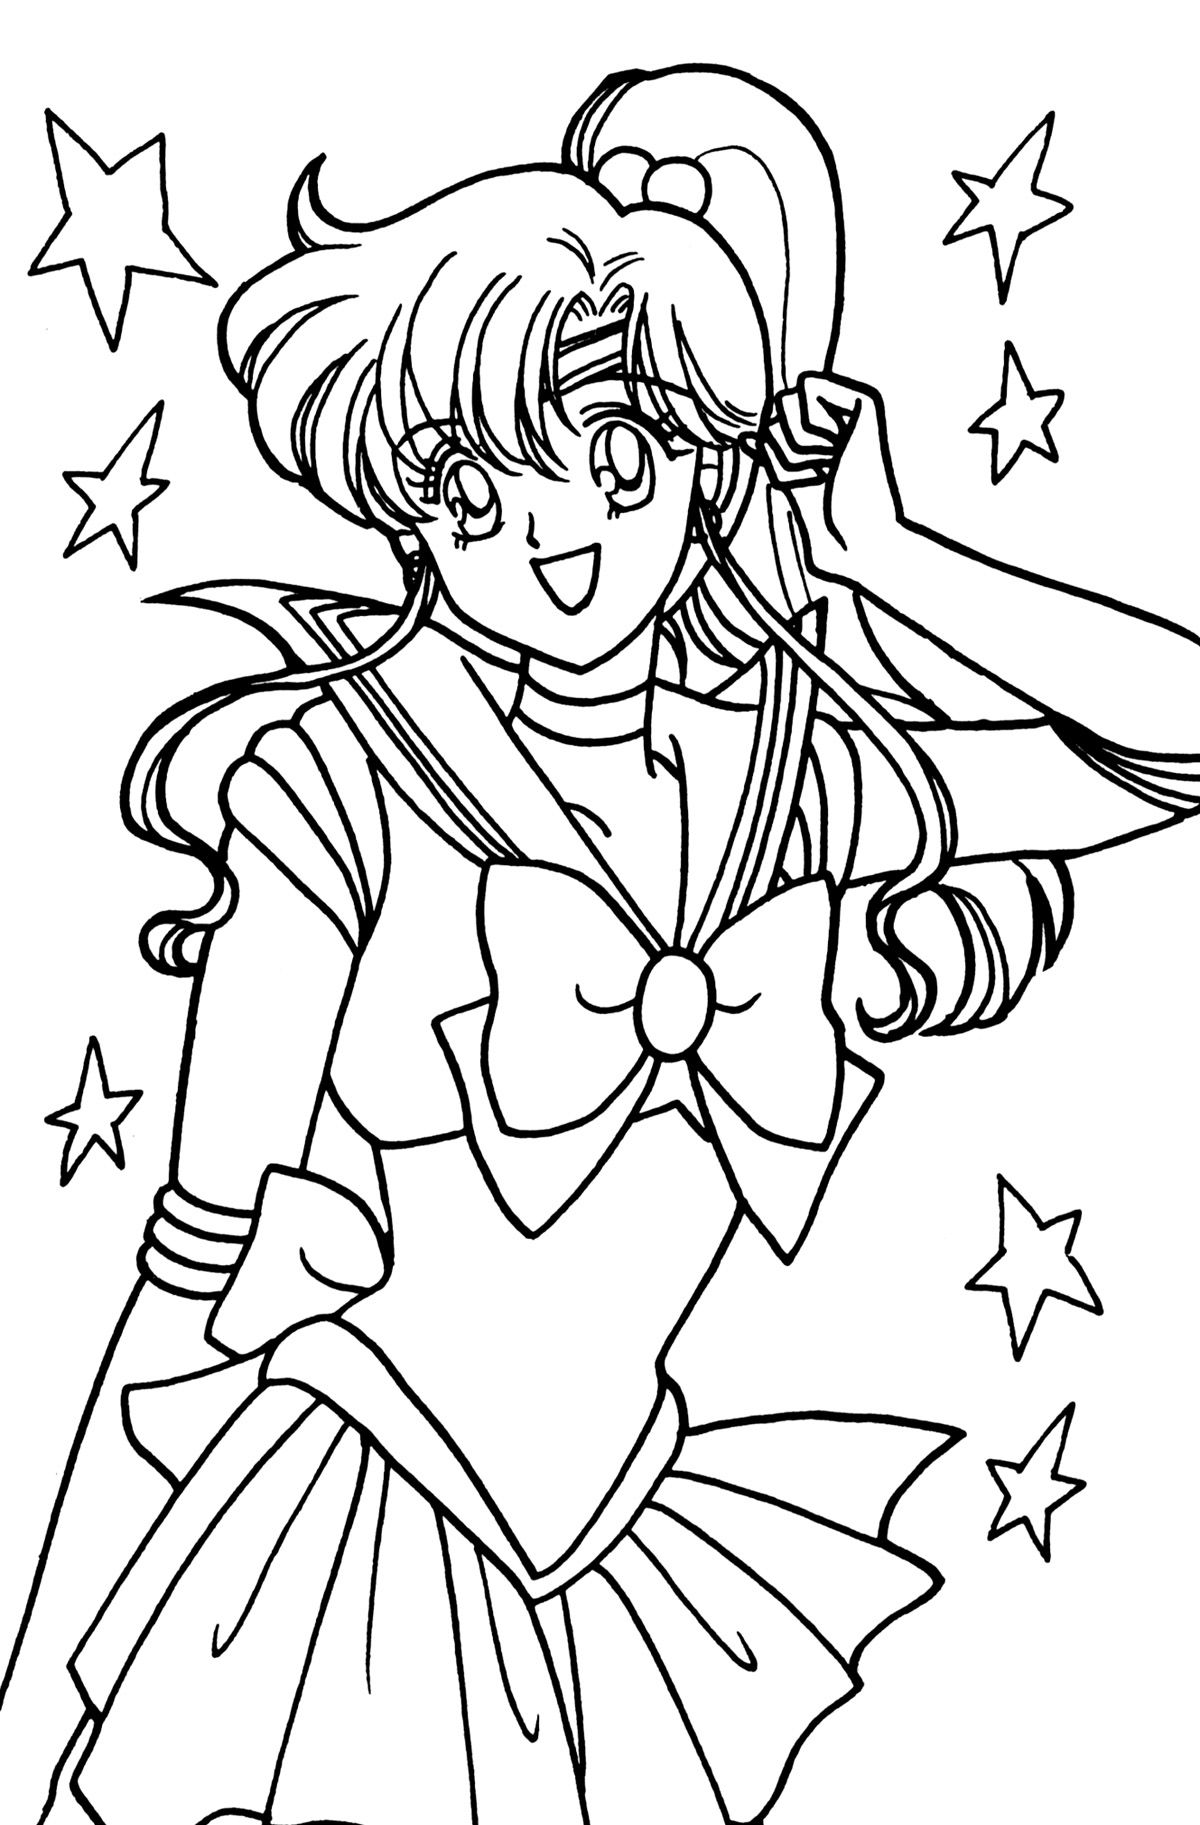 Jupiter068 Jpg 1200 1825 Sailor Moon Coloring Pages Moon Coloring Pages Sailor Moon Crafts